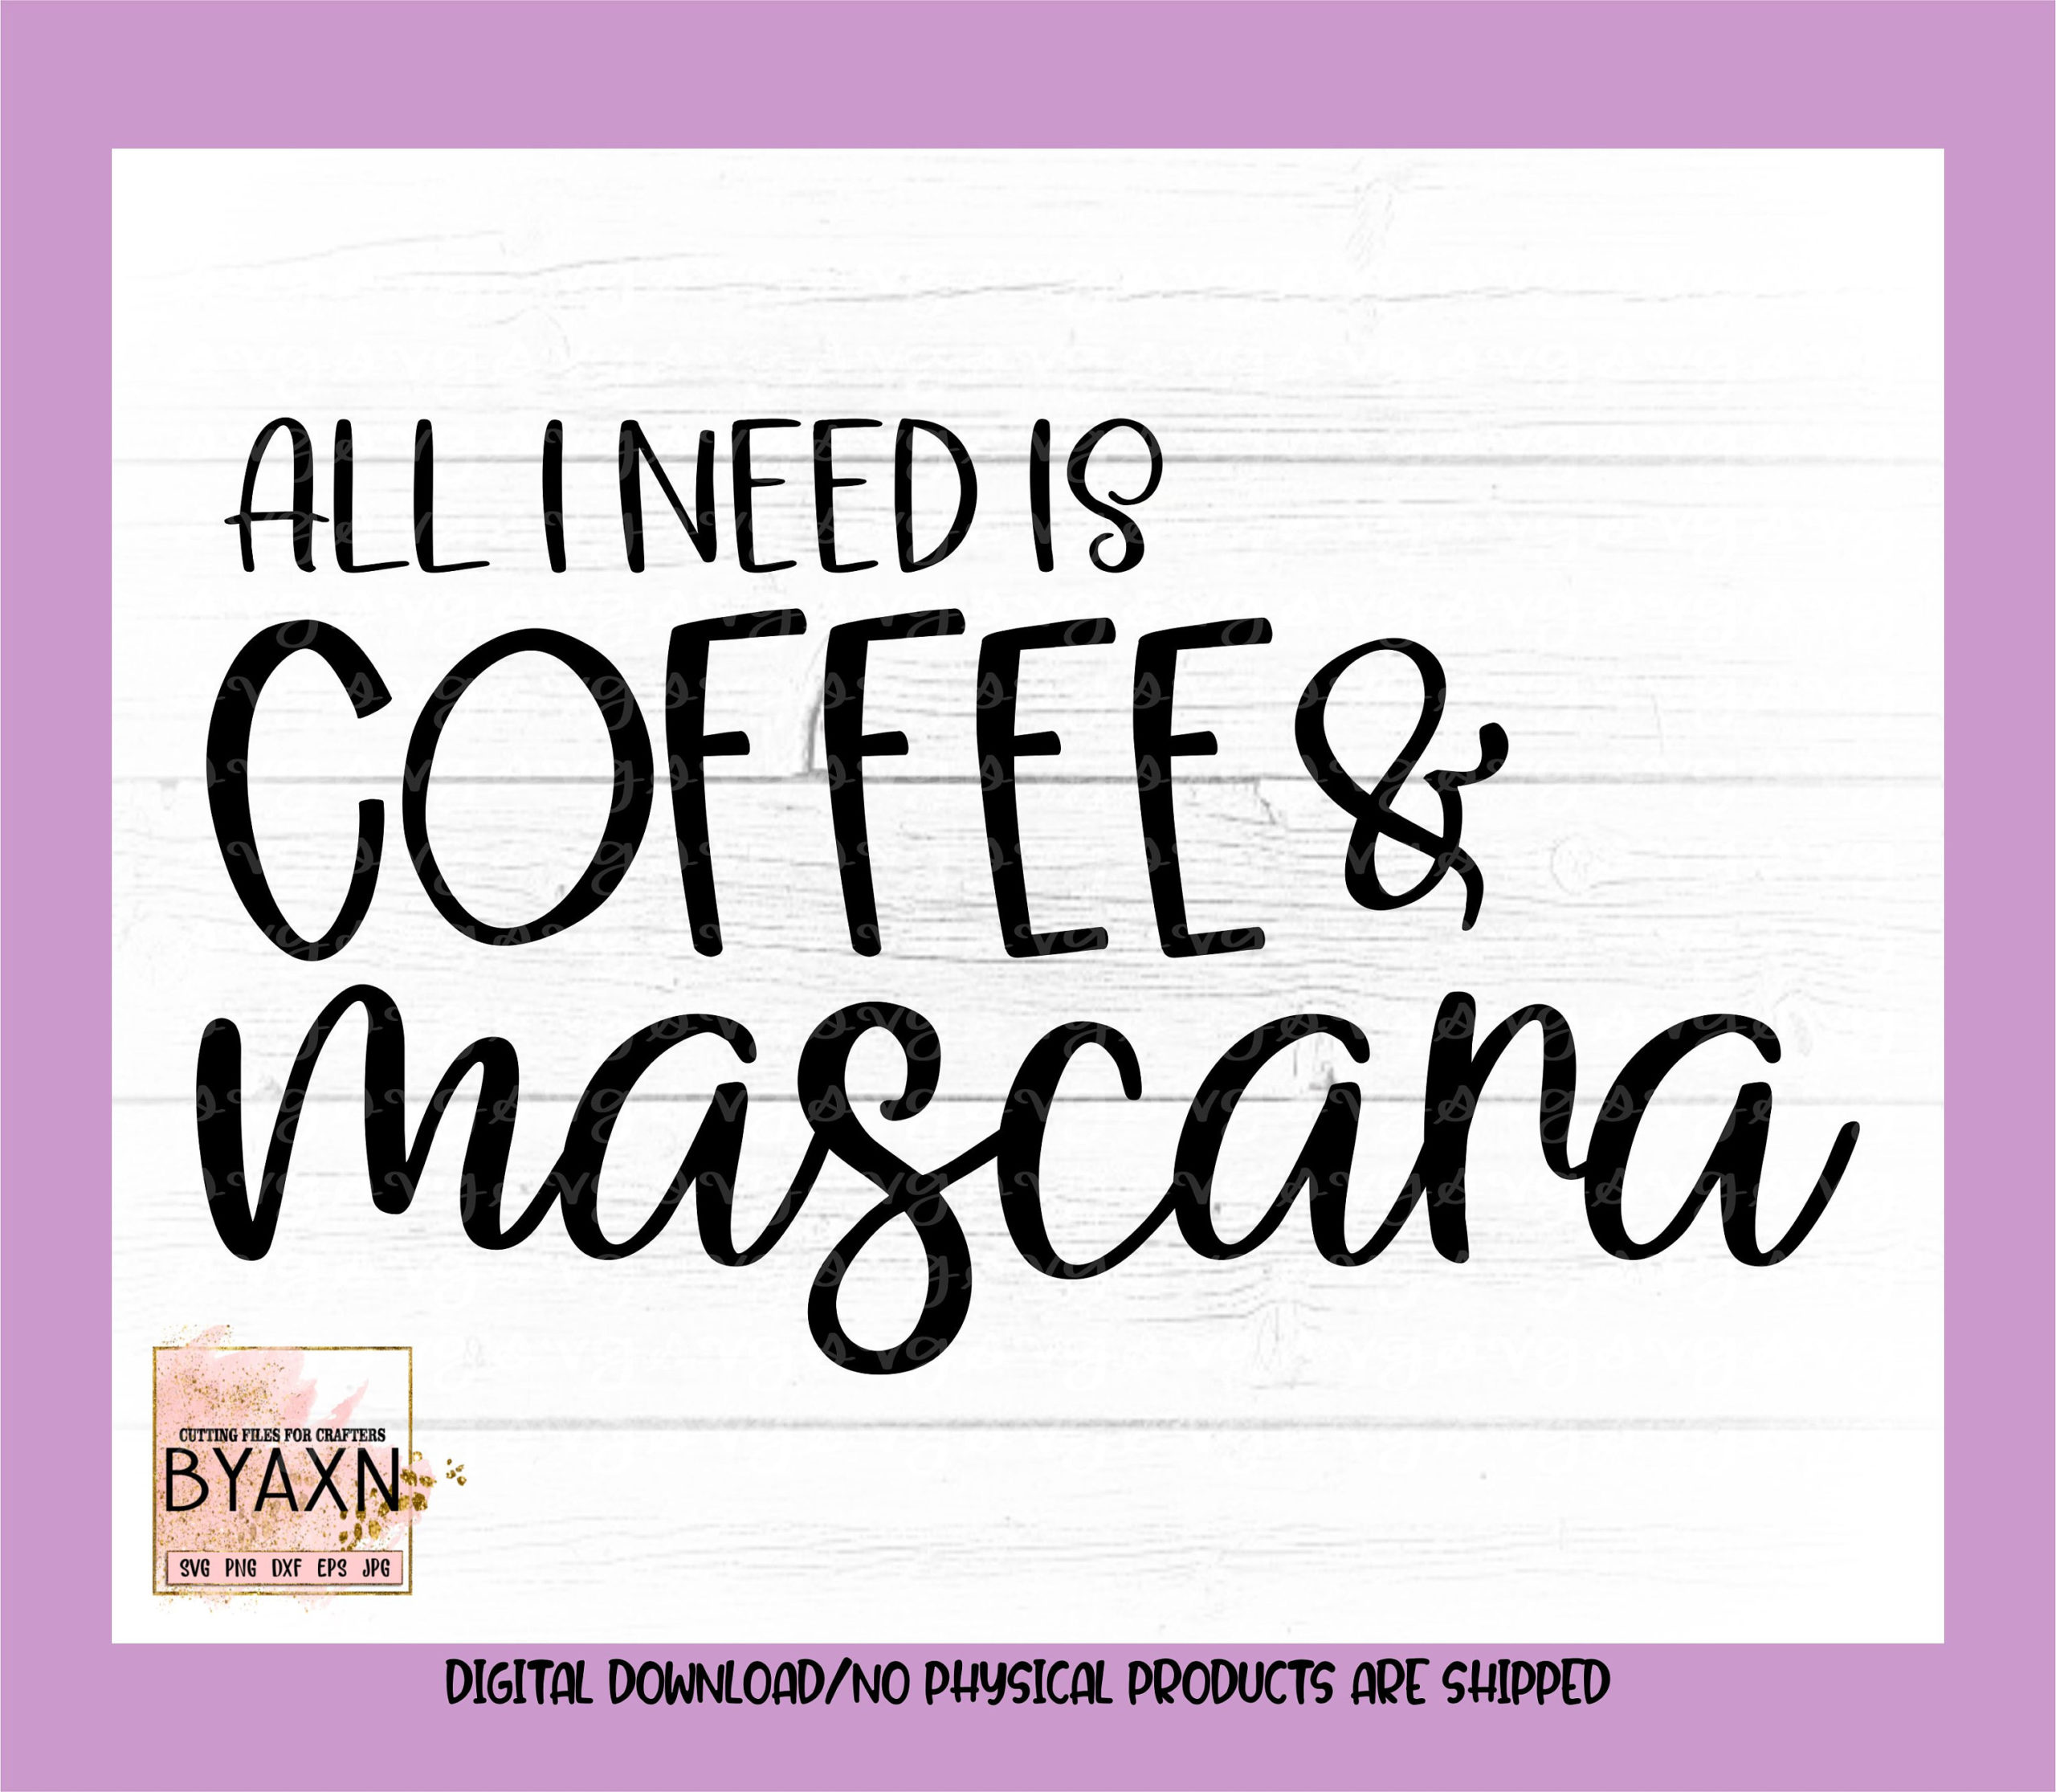 Make-up-svgall-i-need-is-coffee-and-mascara-svg-mascara-svg-lashes-svg-coffee-svg-makeup-svg-designs-makeup-cut-file-cricut-svg-60514c8d